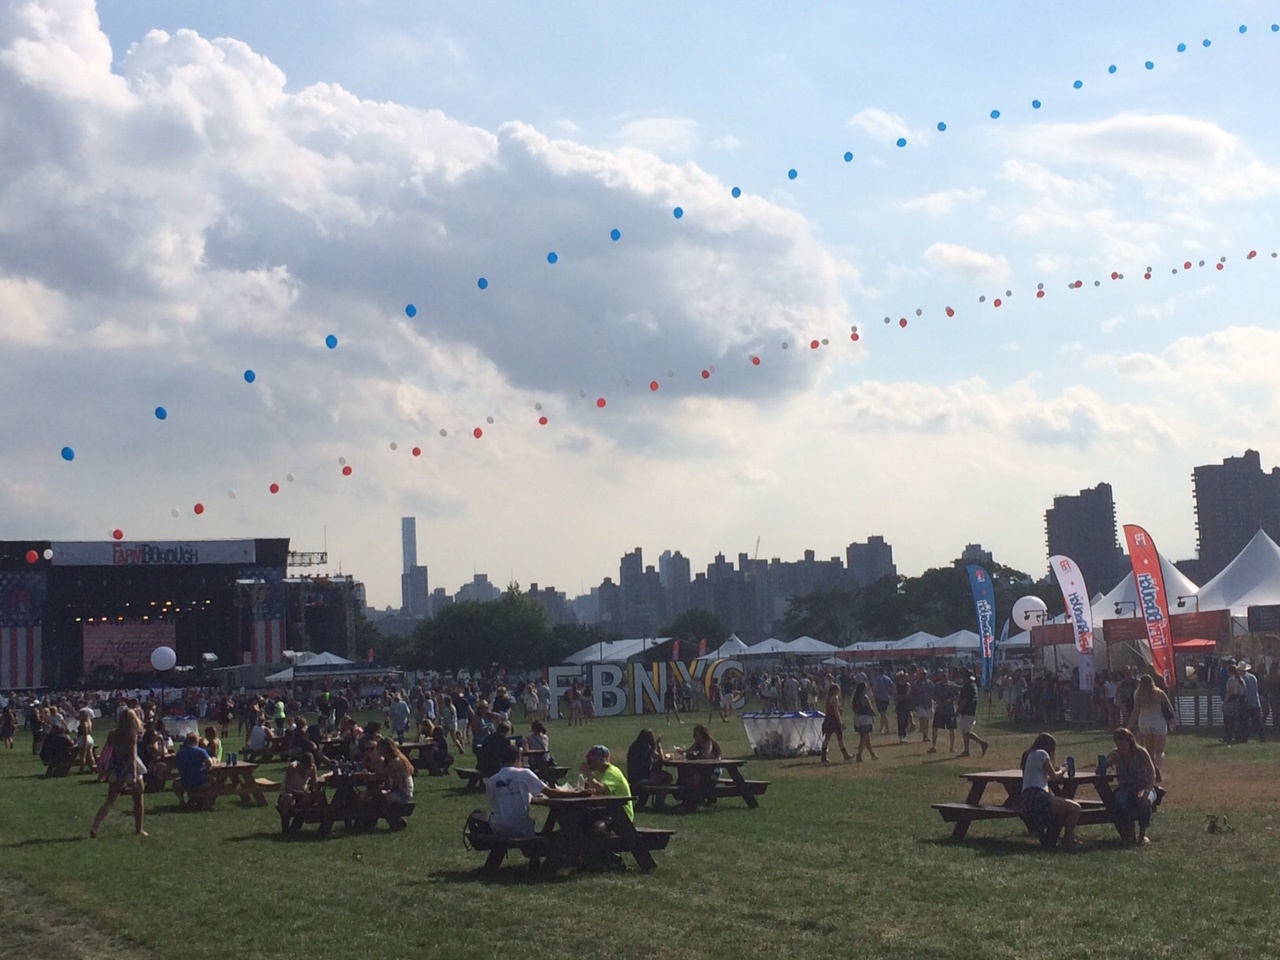 Ten Things I Learned at Farmborough, New York City's First Country Music Festival